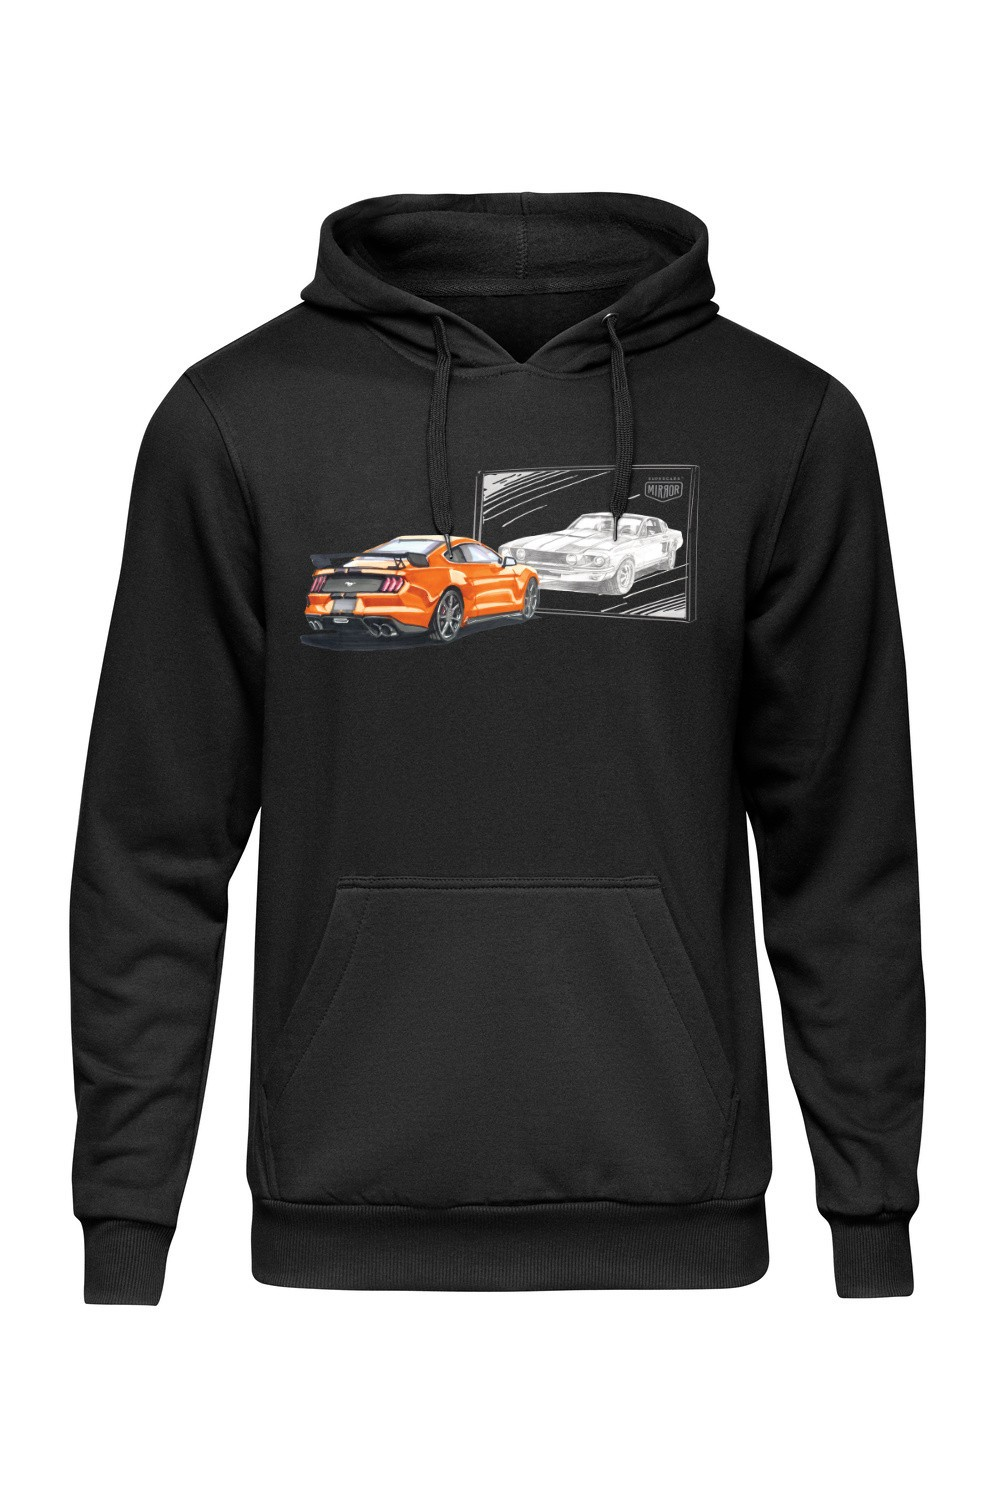 Ford Mustang Orange - Bluza